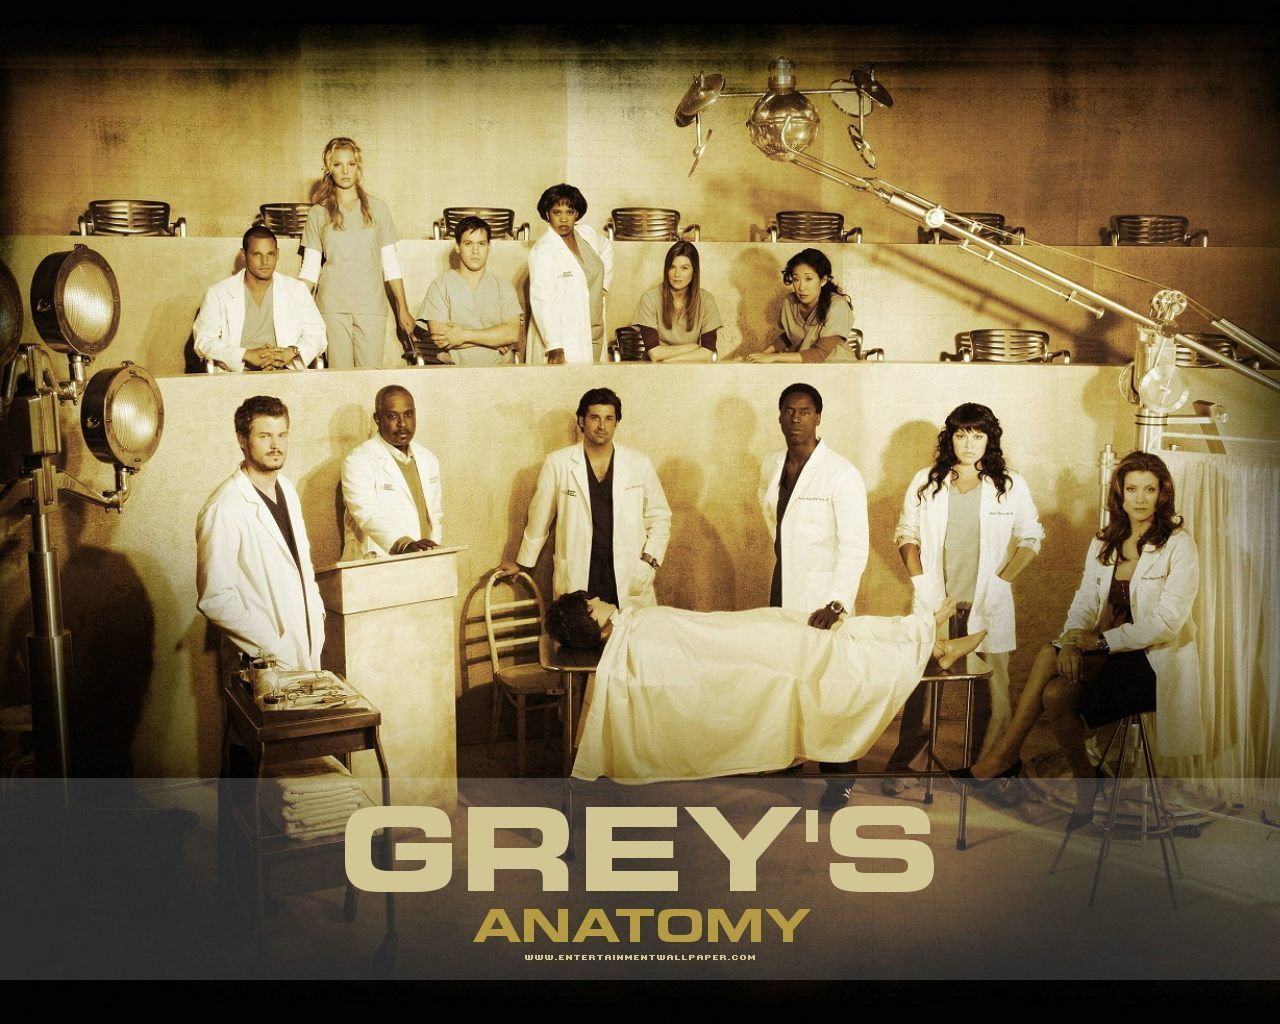 Grey's Anatomy - Grey's Anatomy Wallpaper (1450918) - Fanpop fanclubs